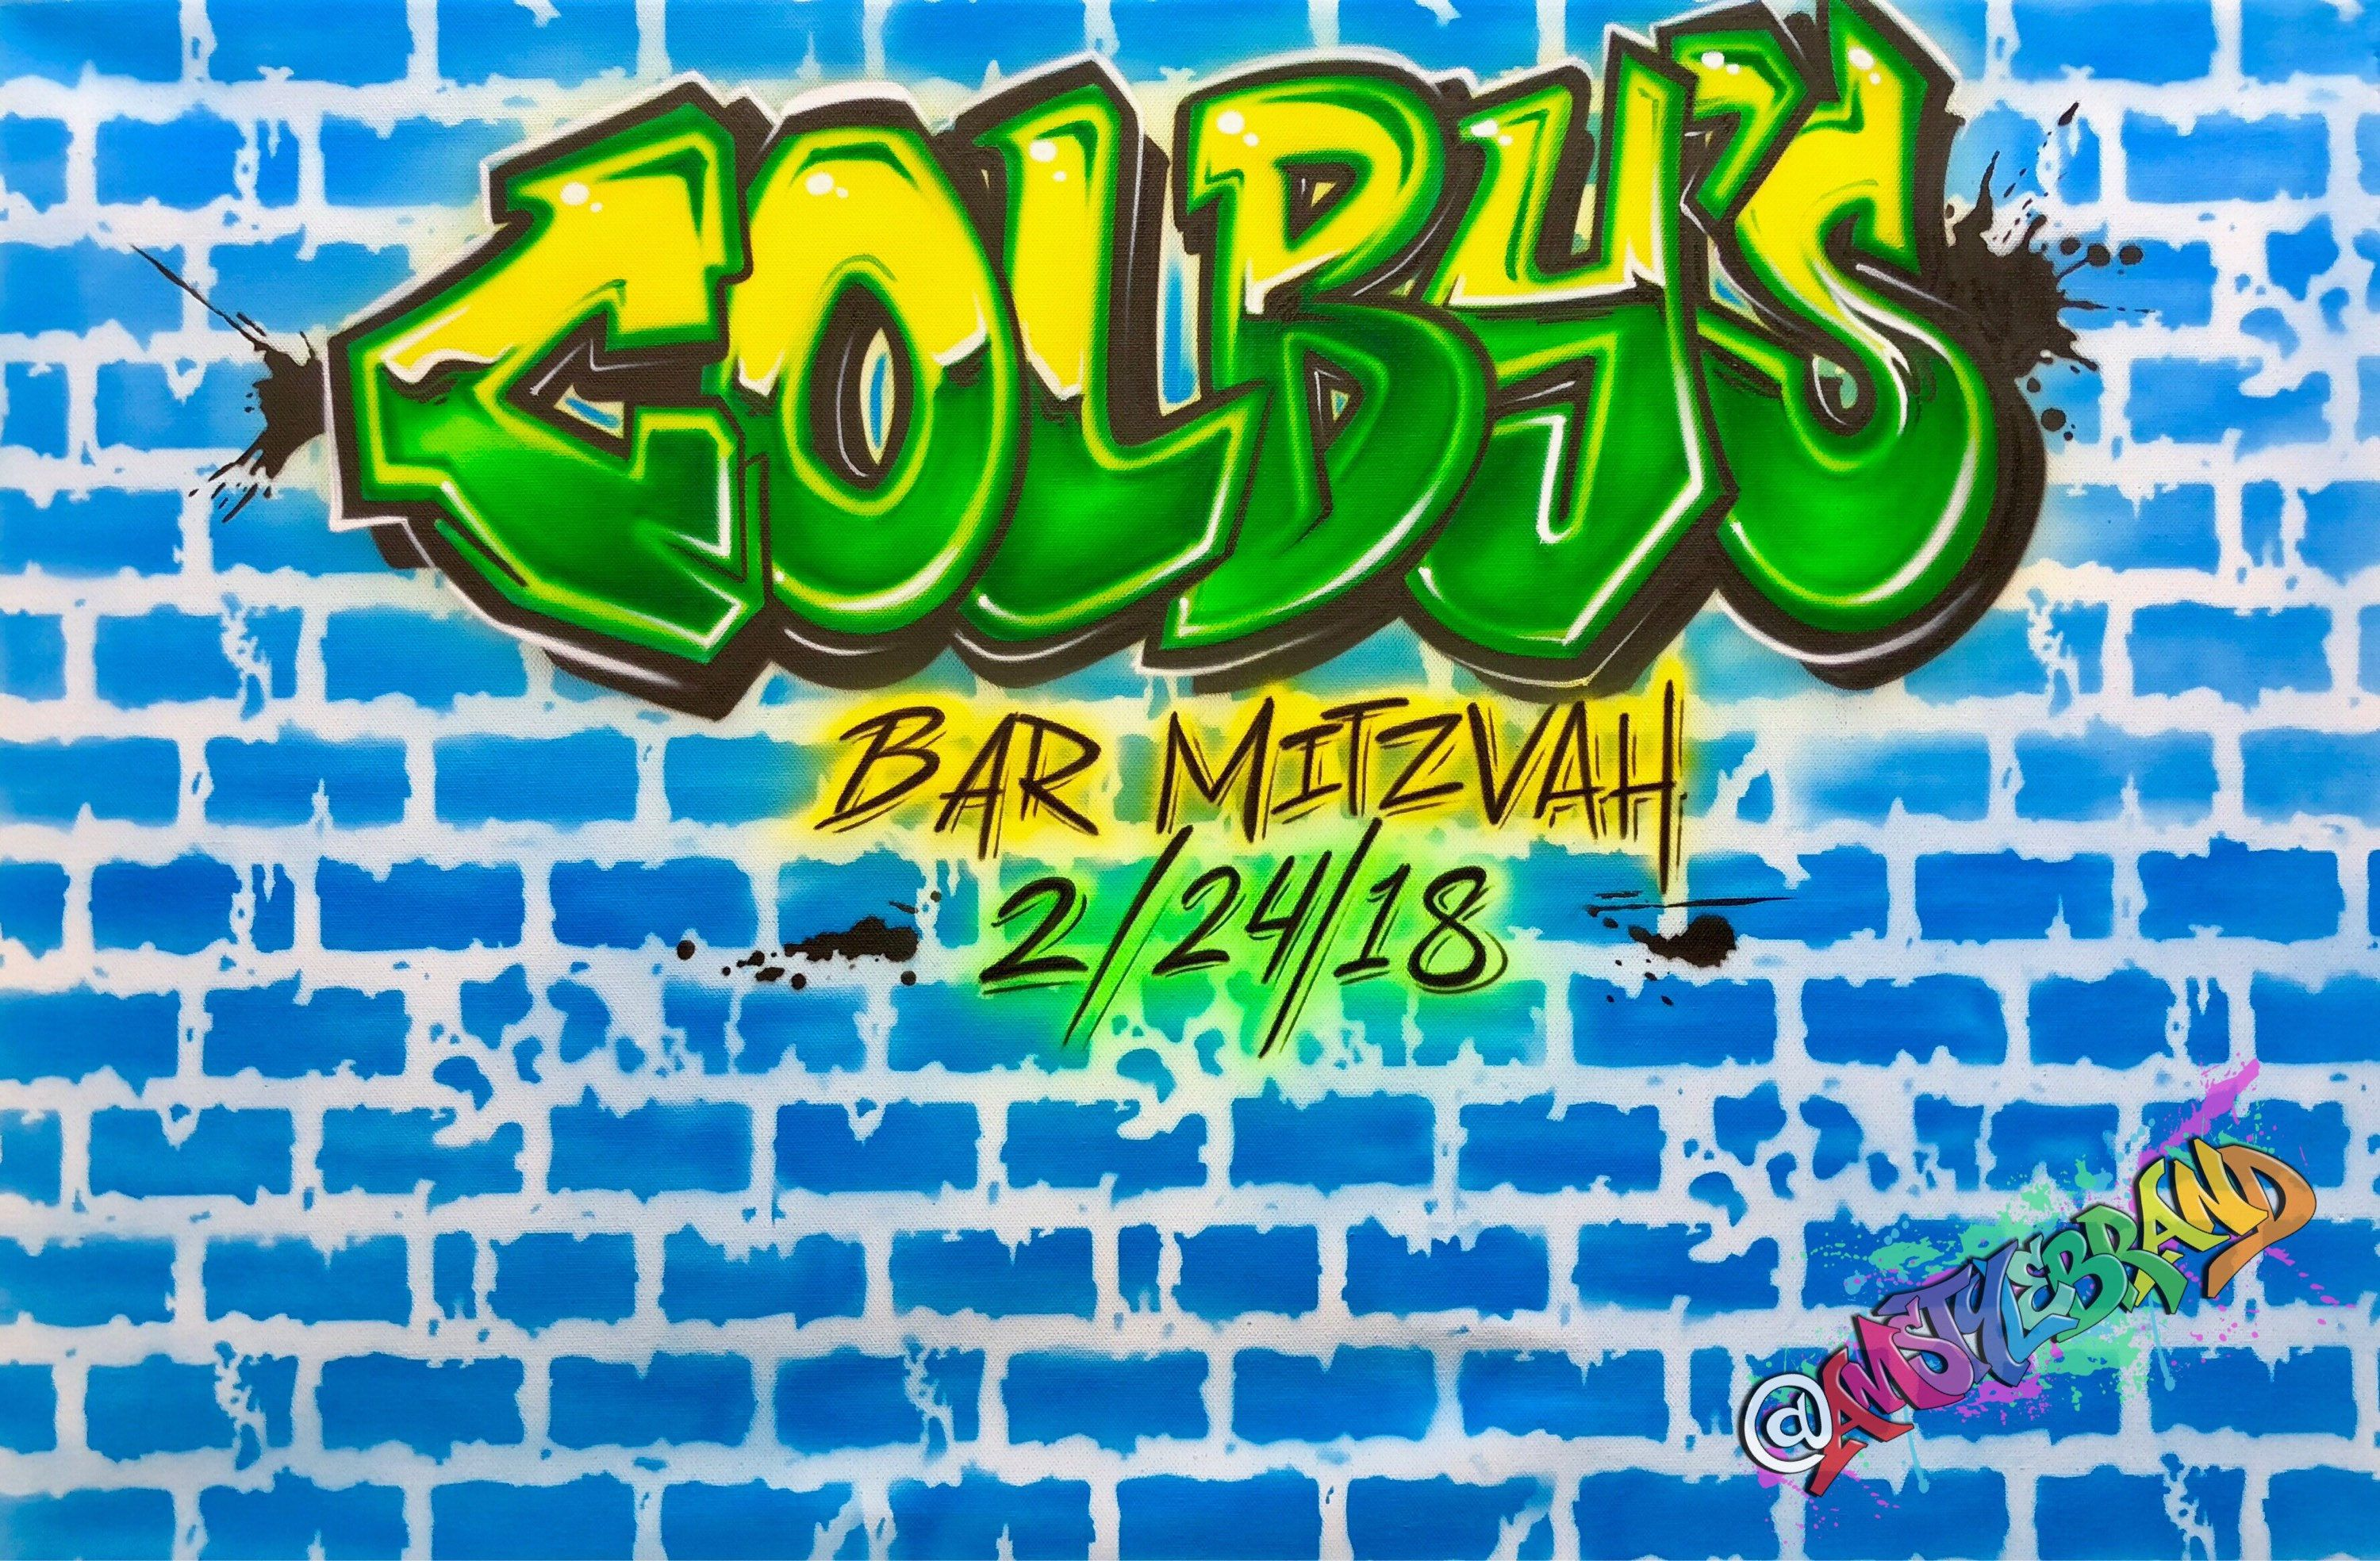 Excited To Share The Latest Addition My Etsy Airbrush Graffiti Wall Art Canvas Sign In Board 20x24 Bar Mitzvahs Bat Event Decor Room